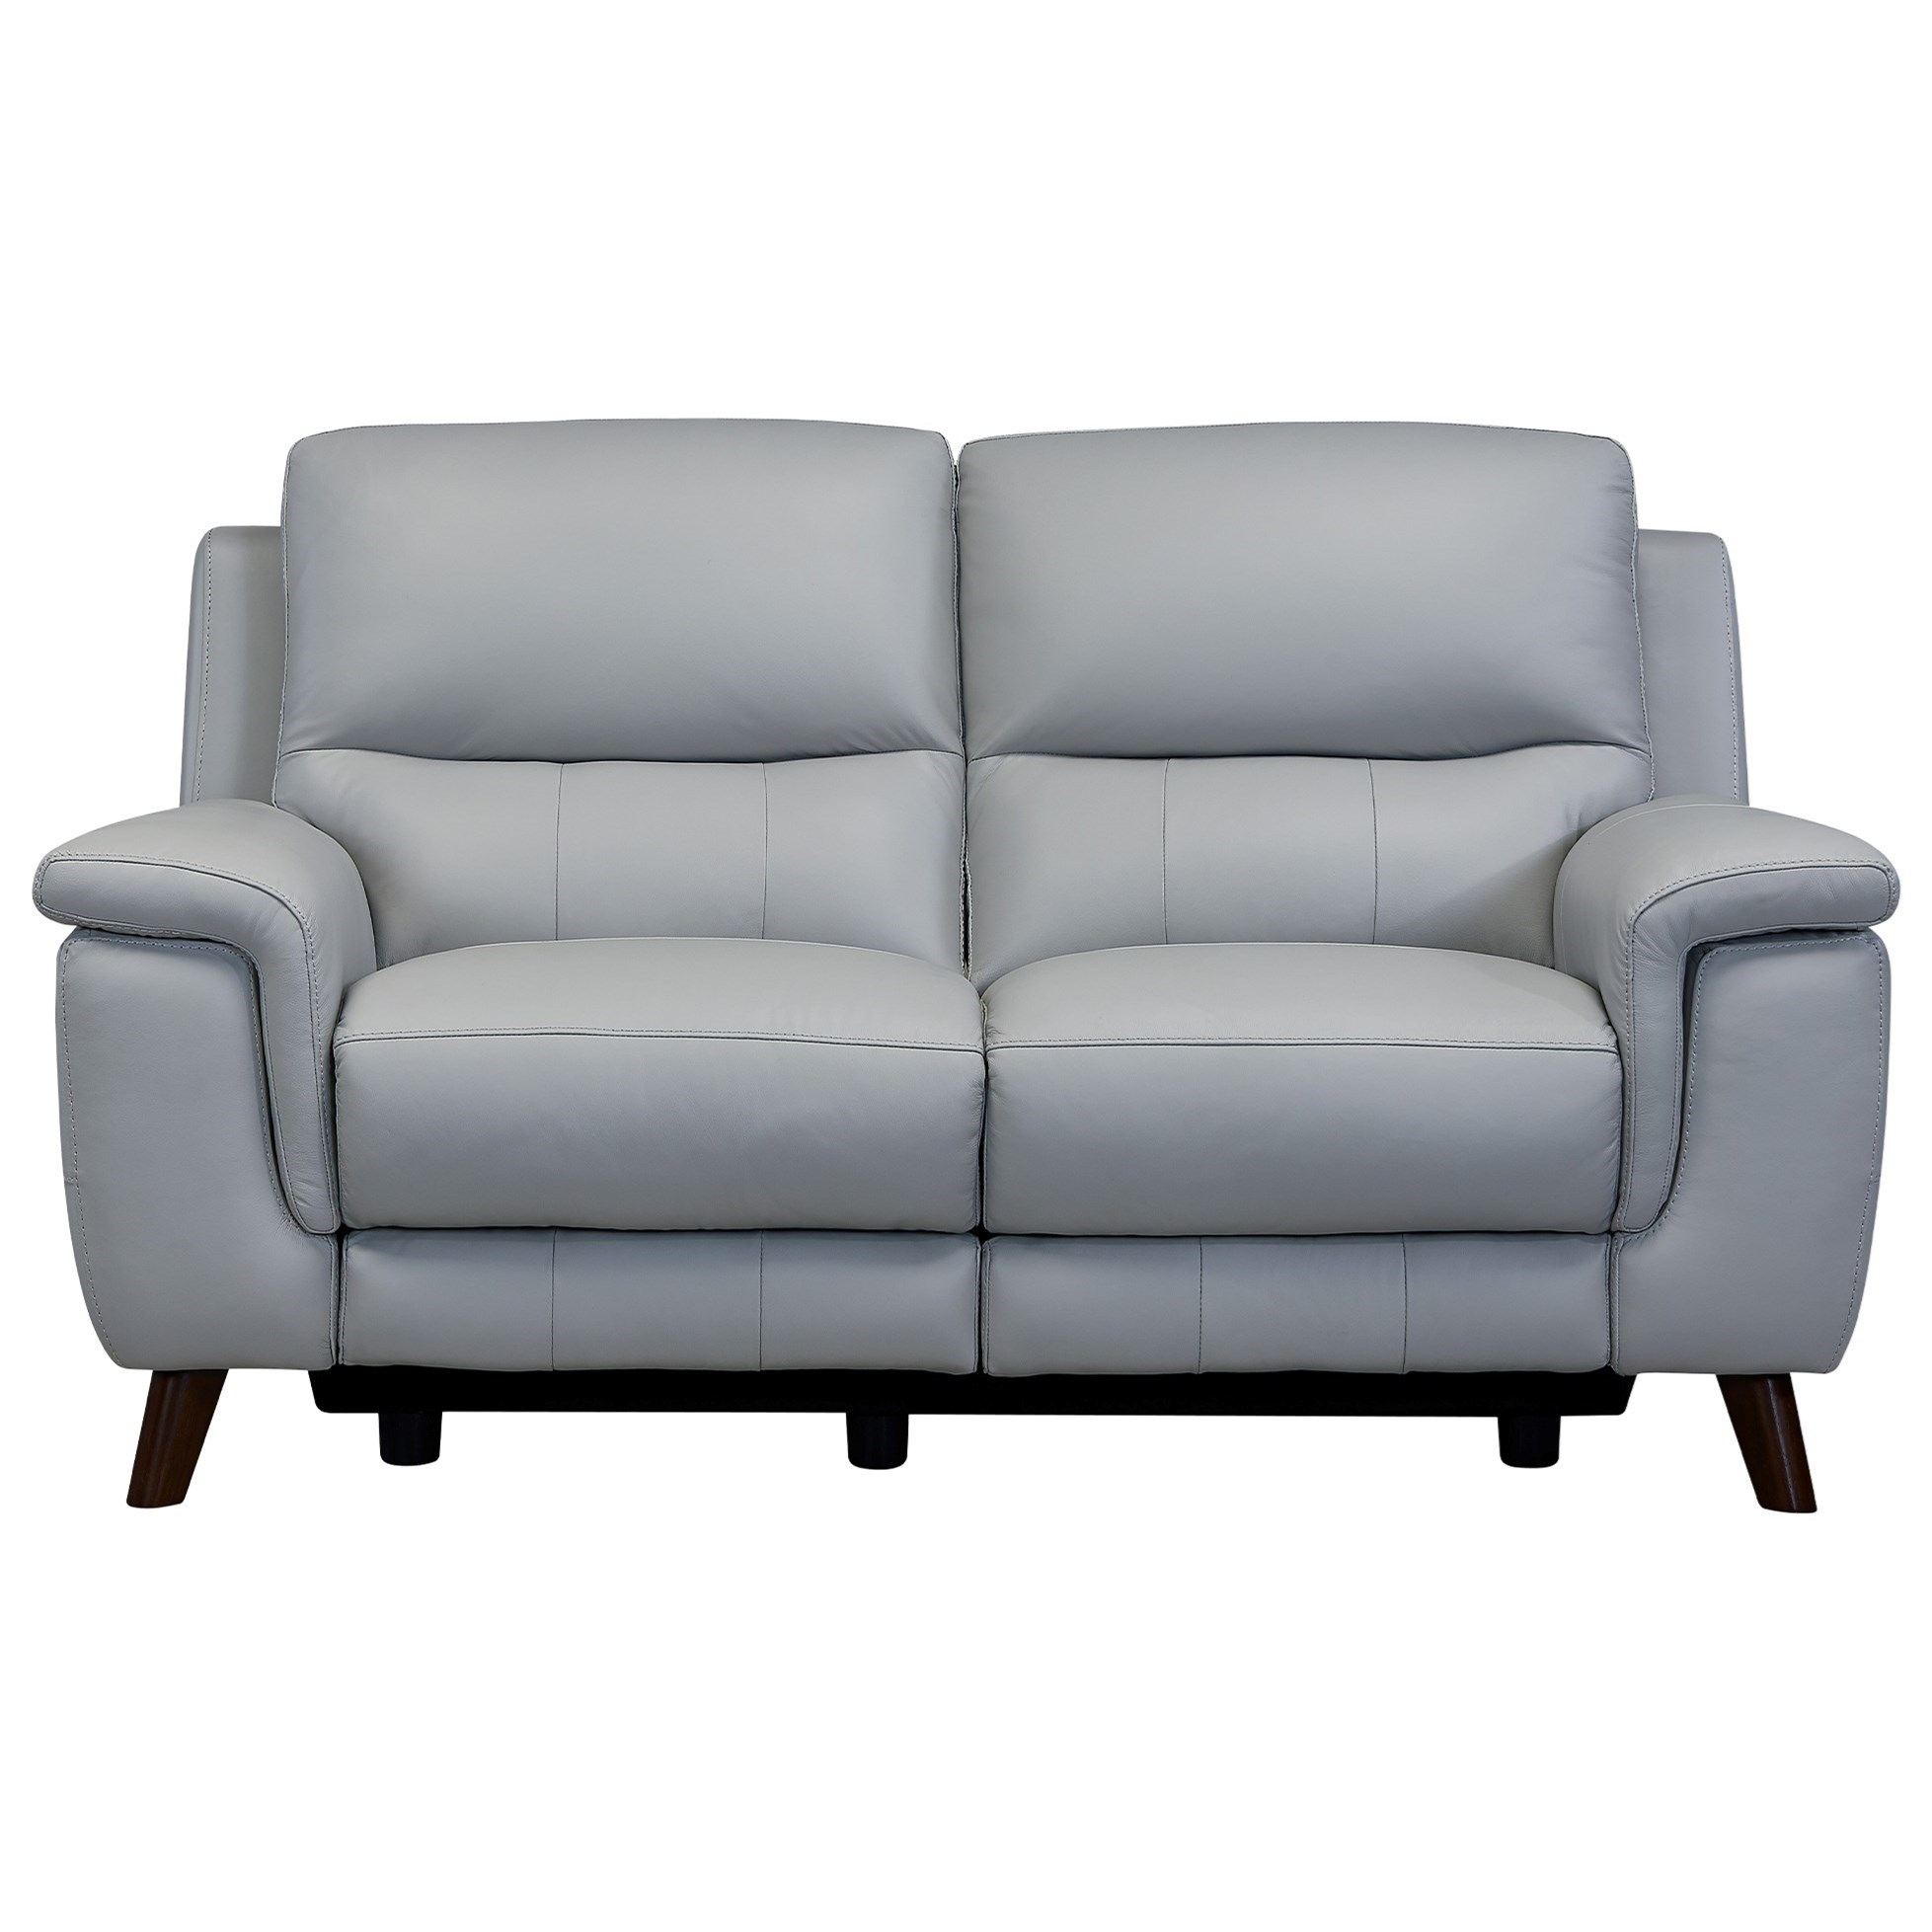 Power Recliner Loveseat